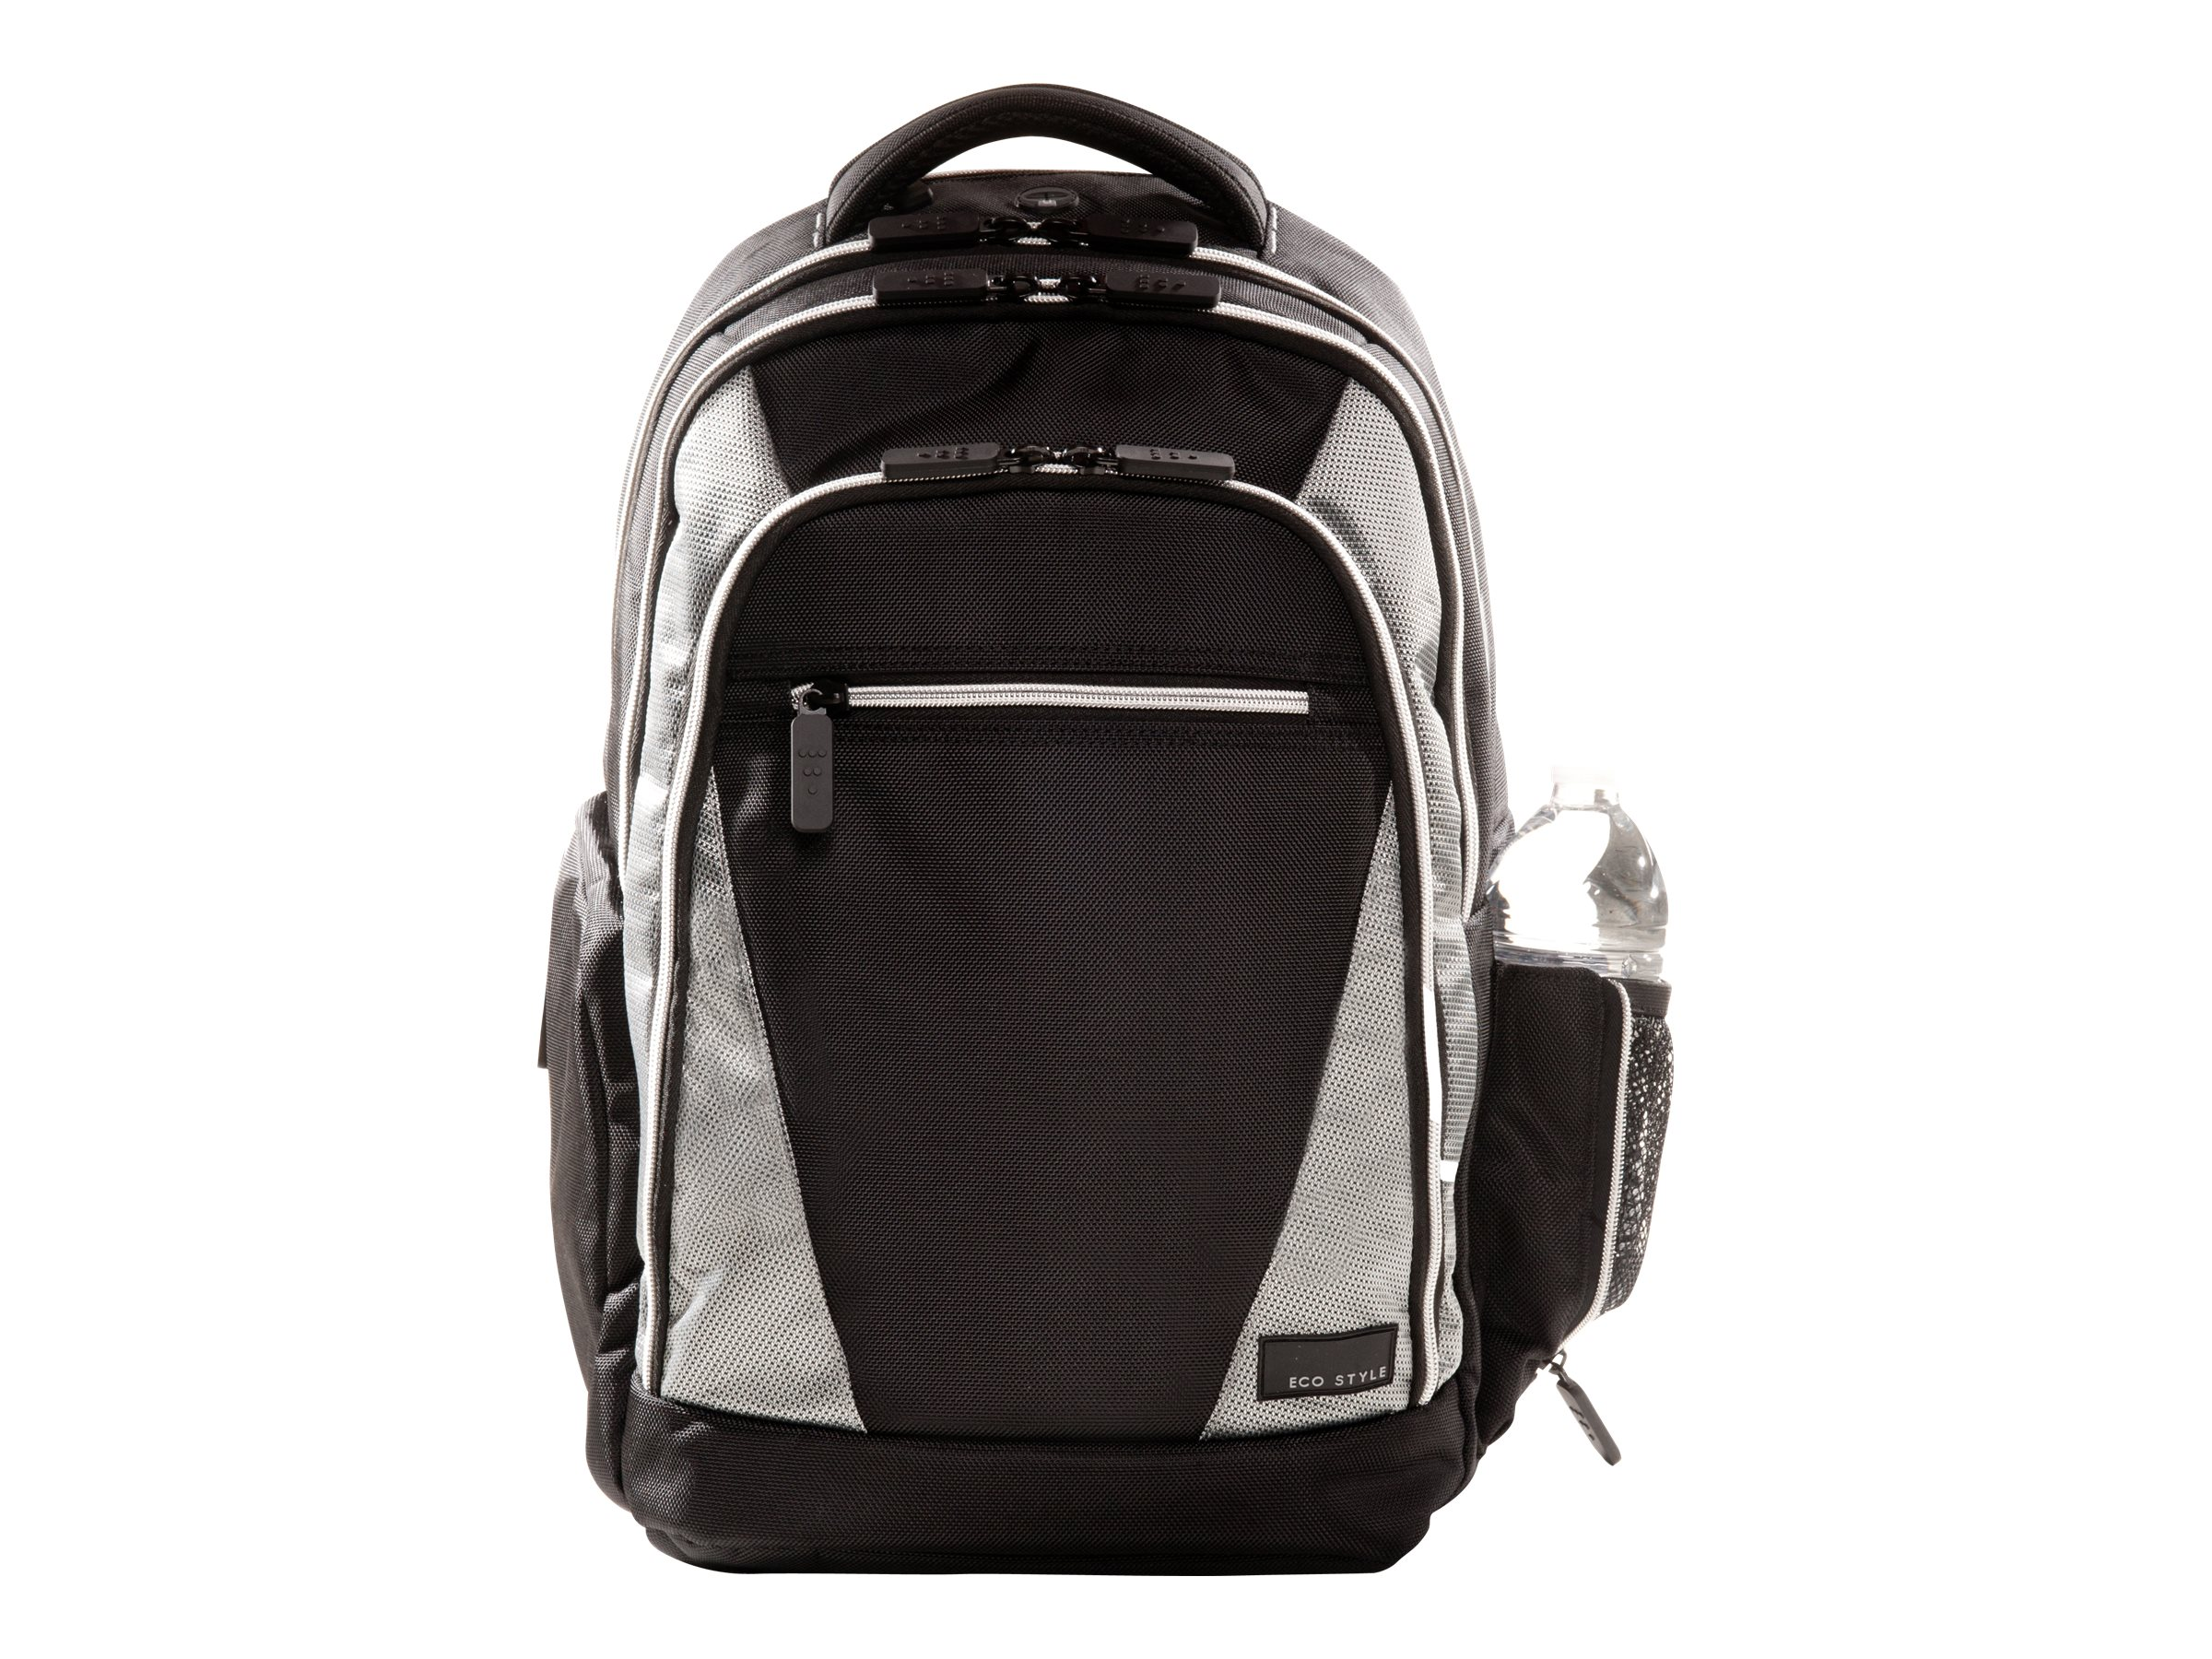 Eco Style Sports Voyage Backpack, Fits 16.4 Notebook, Black Silver